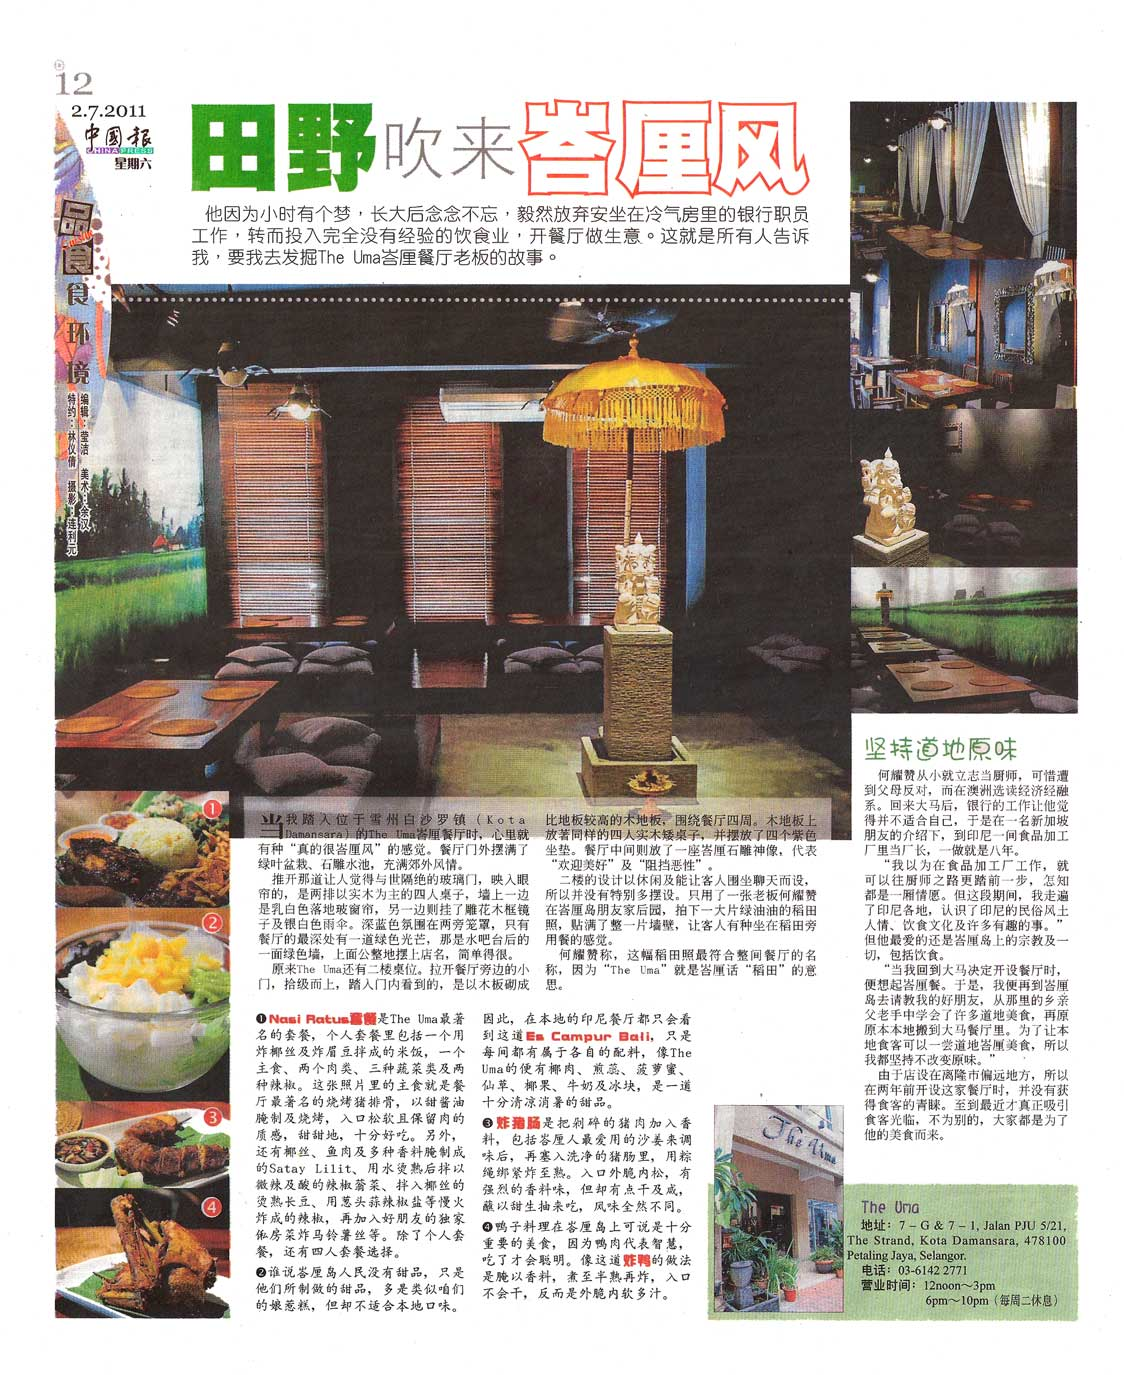 the uma bali restaurant newspaper review chinapress